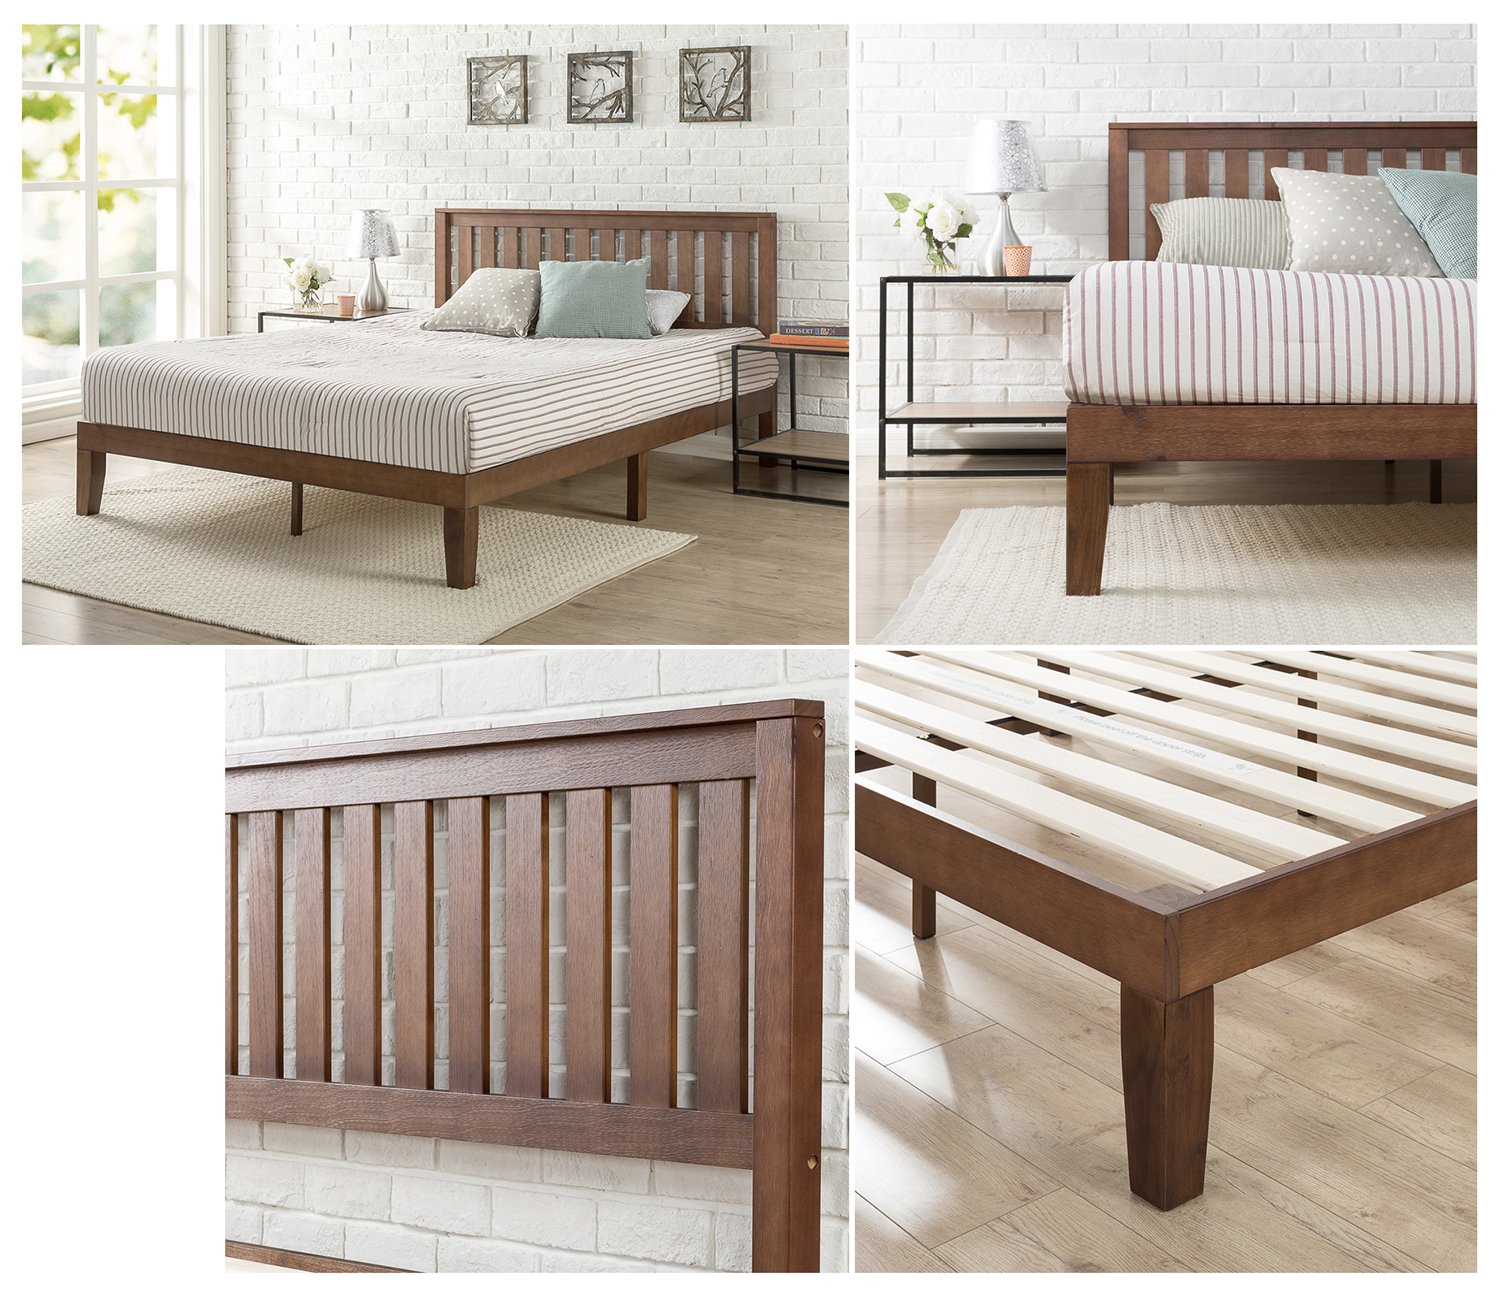 Zinus 12 Inch Solid Wood Platform Bed with Headboard/No Box Spring Needed/Wood Slat Support/Antique Espresso Finish, Twin by Zinus